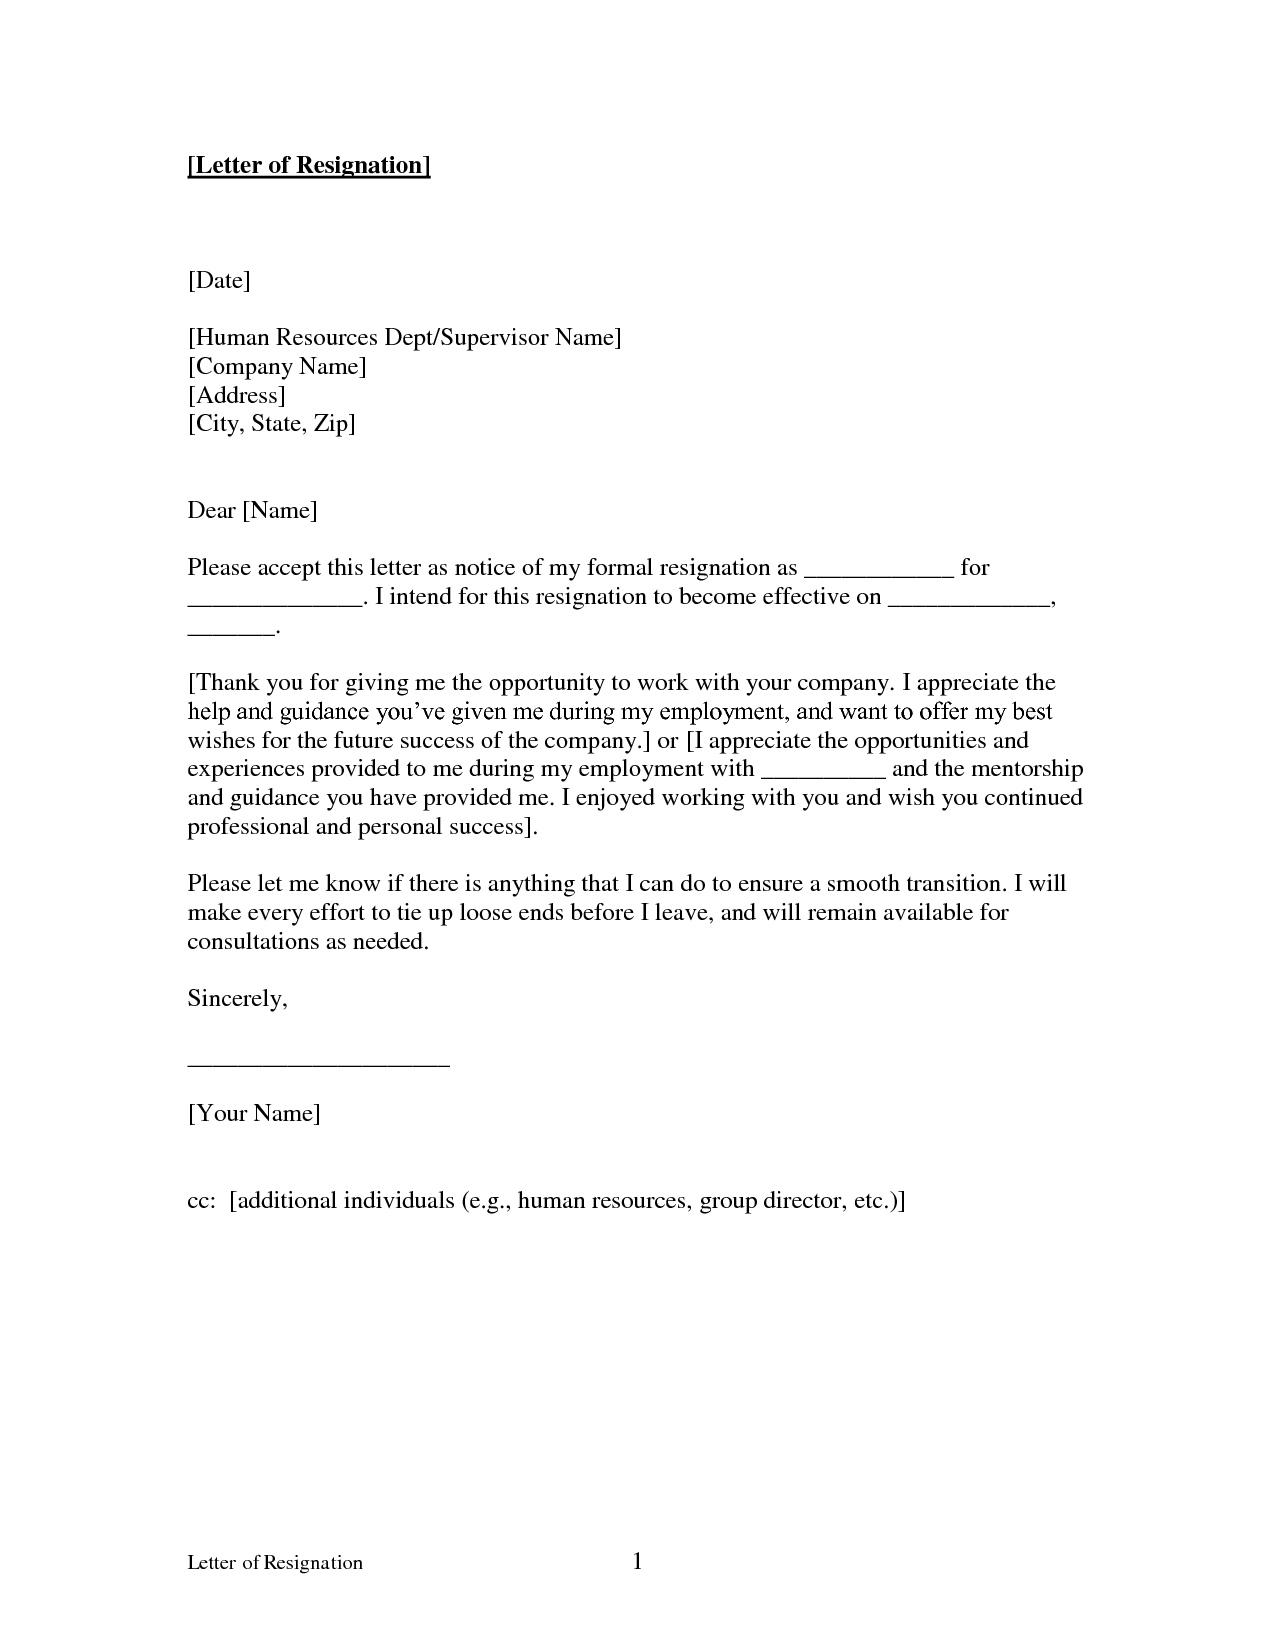 Real Estate Commission Letter Template - Printable Sample Letter Of Resignation form